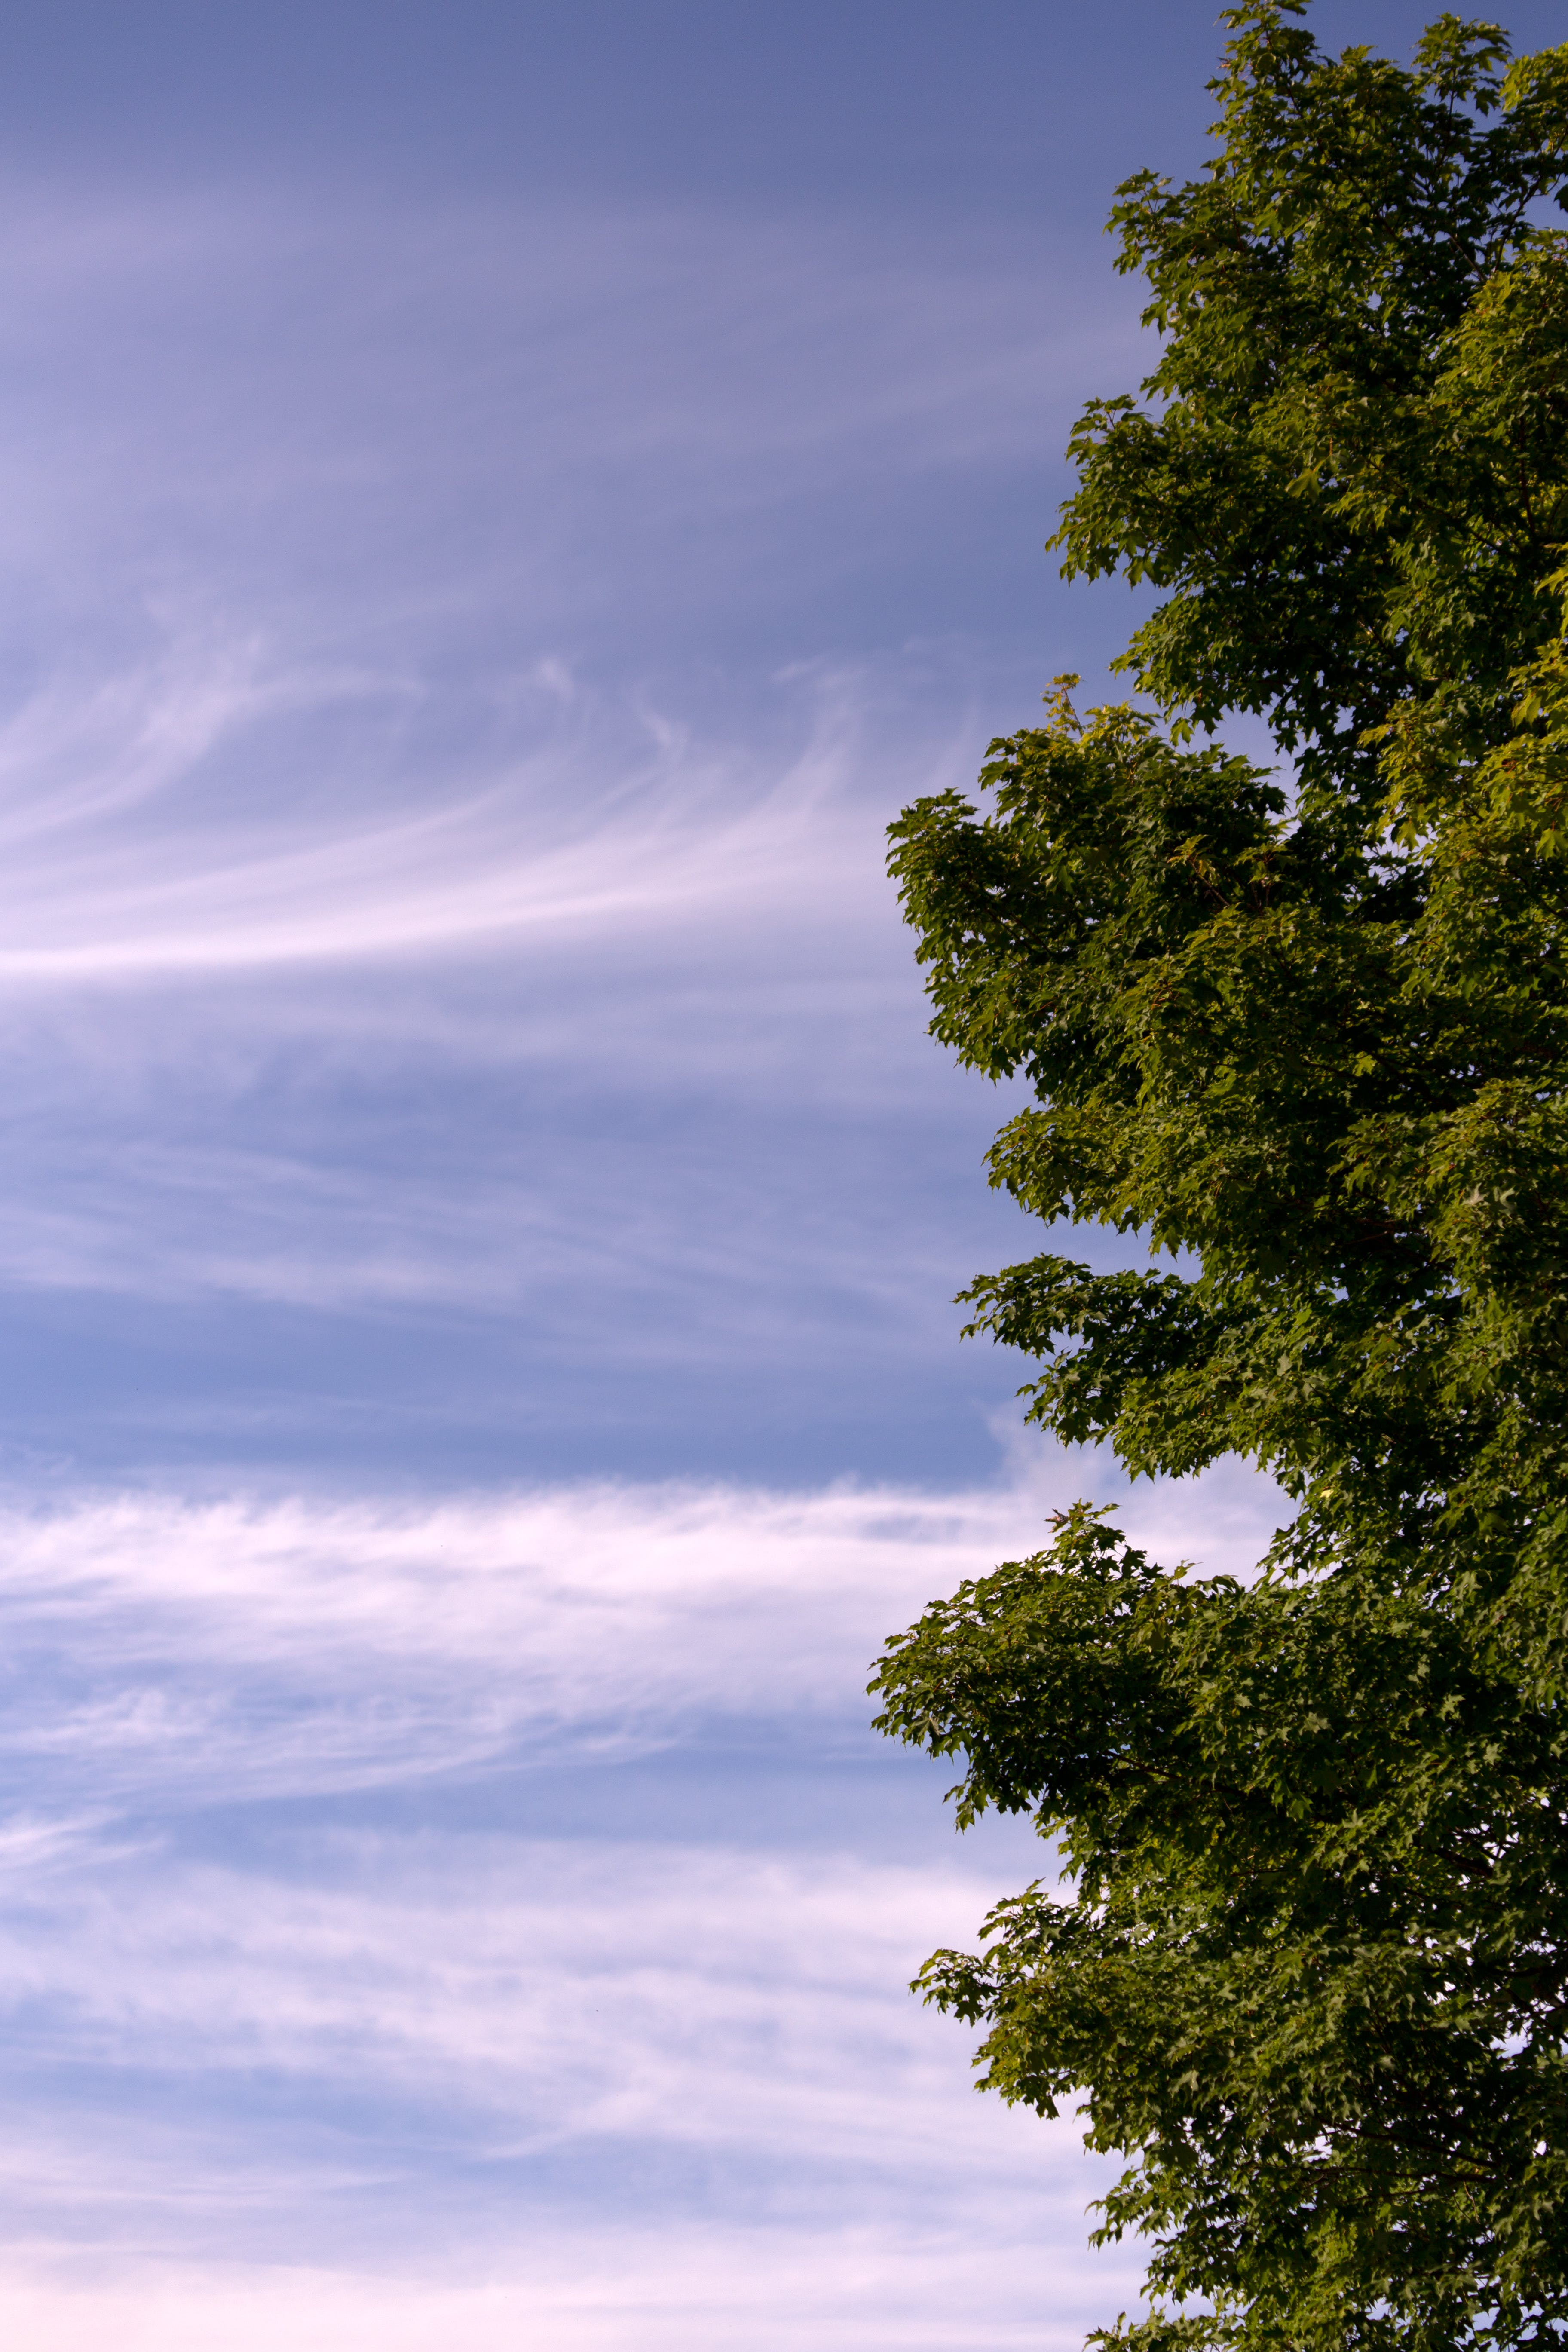 Green Leaf Tree Overlooking White Clouds and Blue Sky